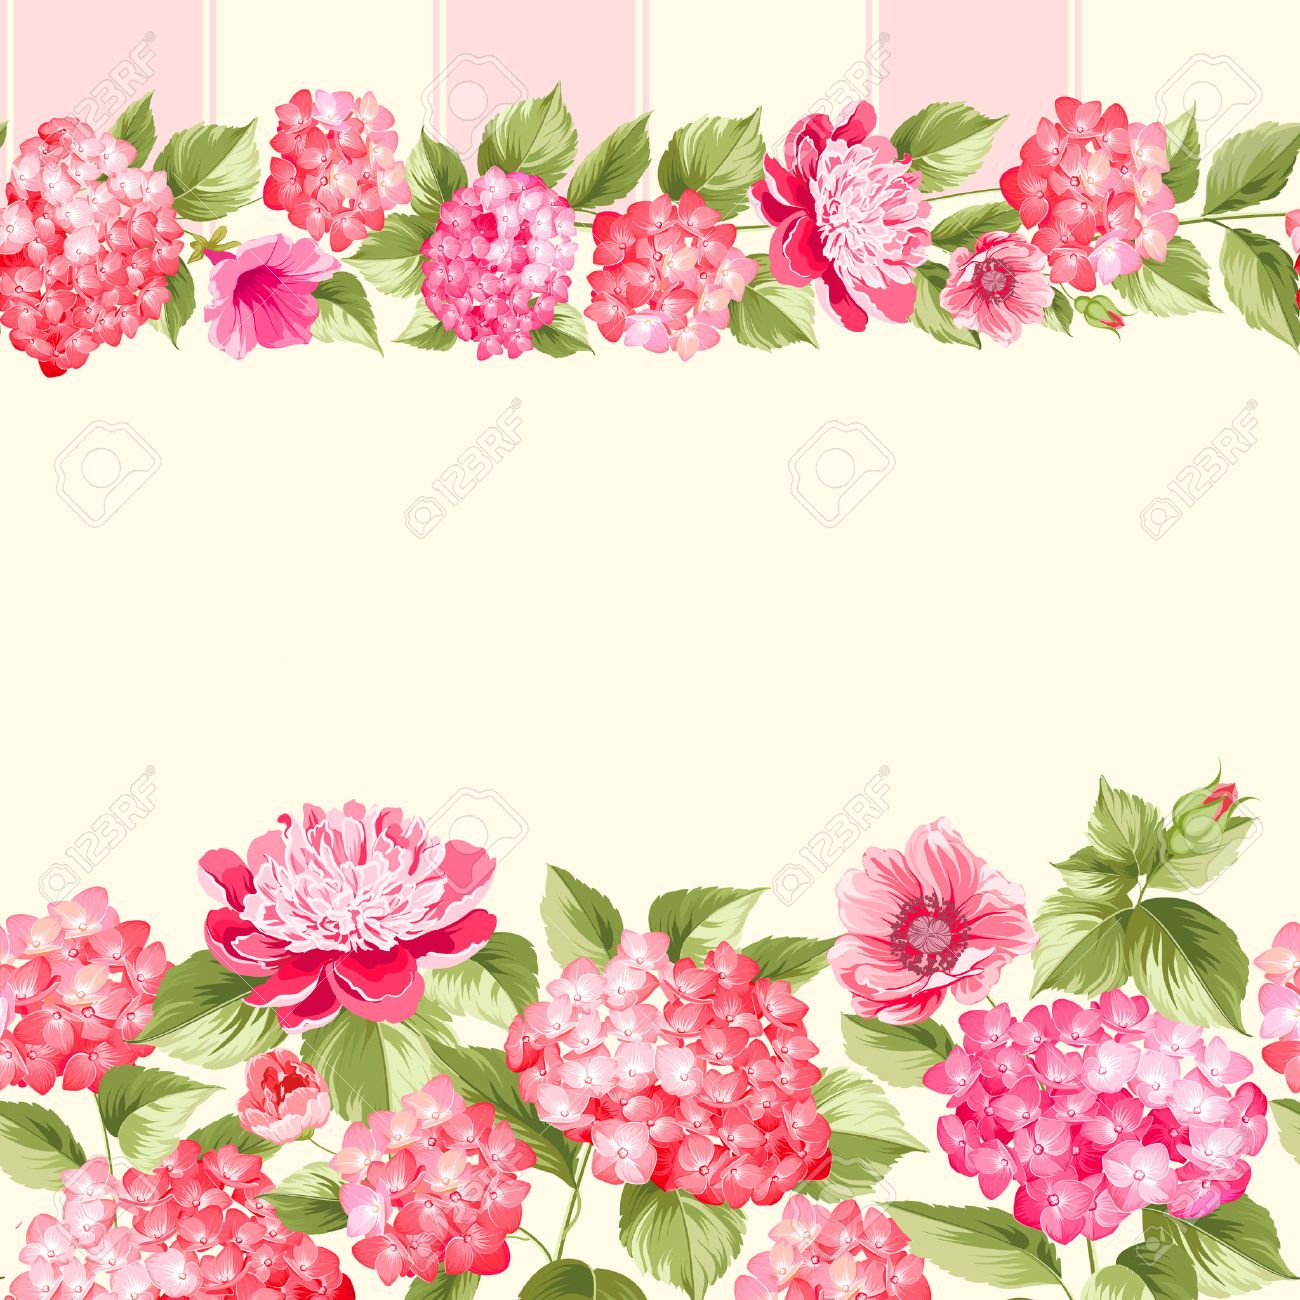 Pink flower border with tile elegant vintage card design roses pink flower border with tile elegant vintage card design roses floral wallpaper mightylinksfo